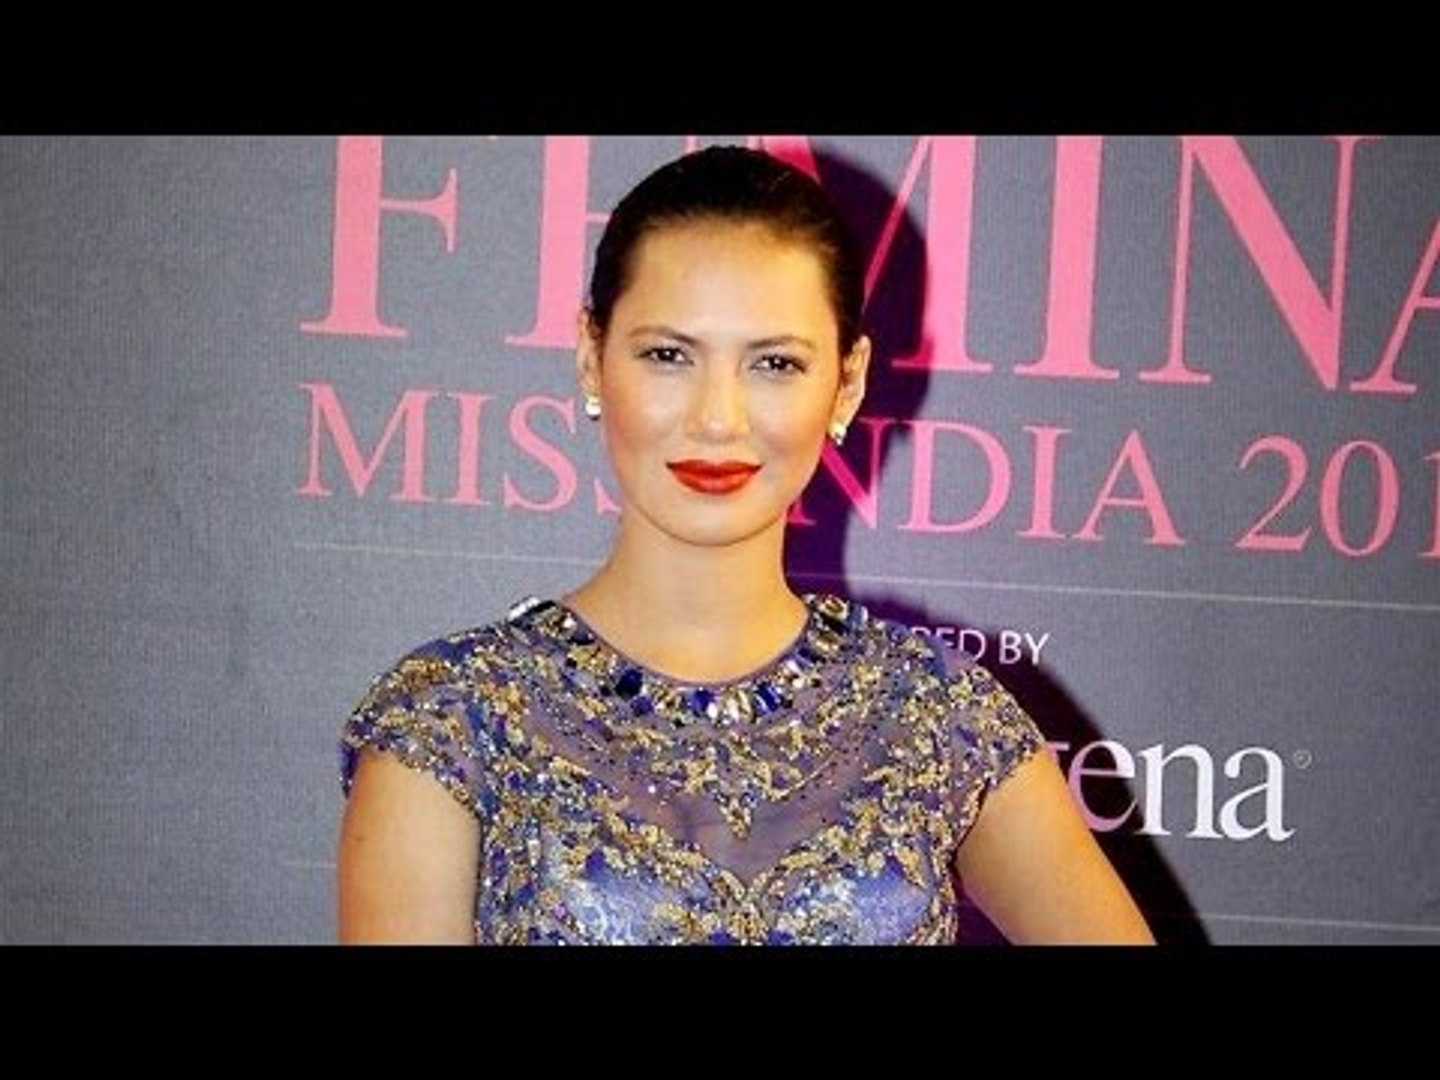 Watch! Summer tips by Rochelle Rao on makeup and clothes